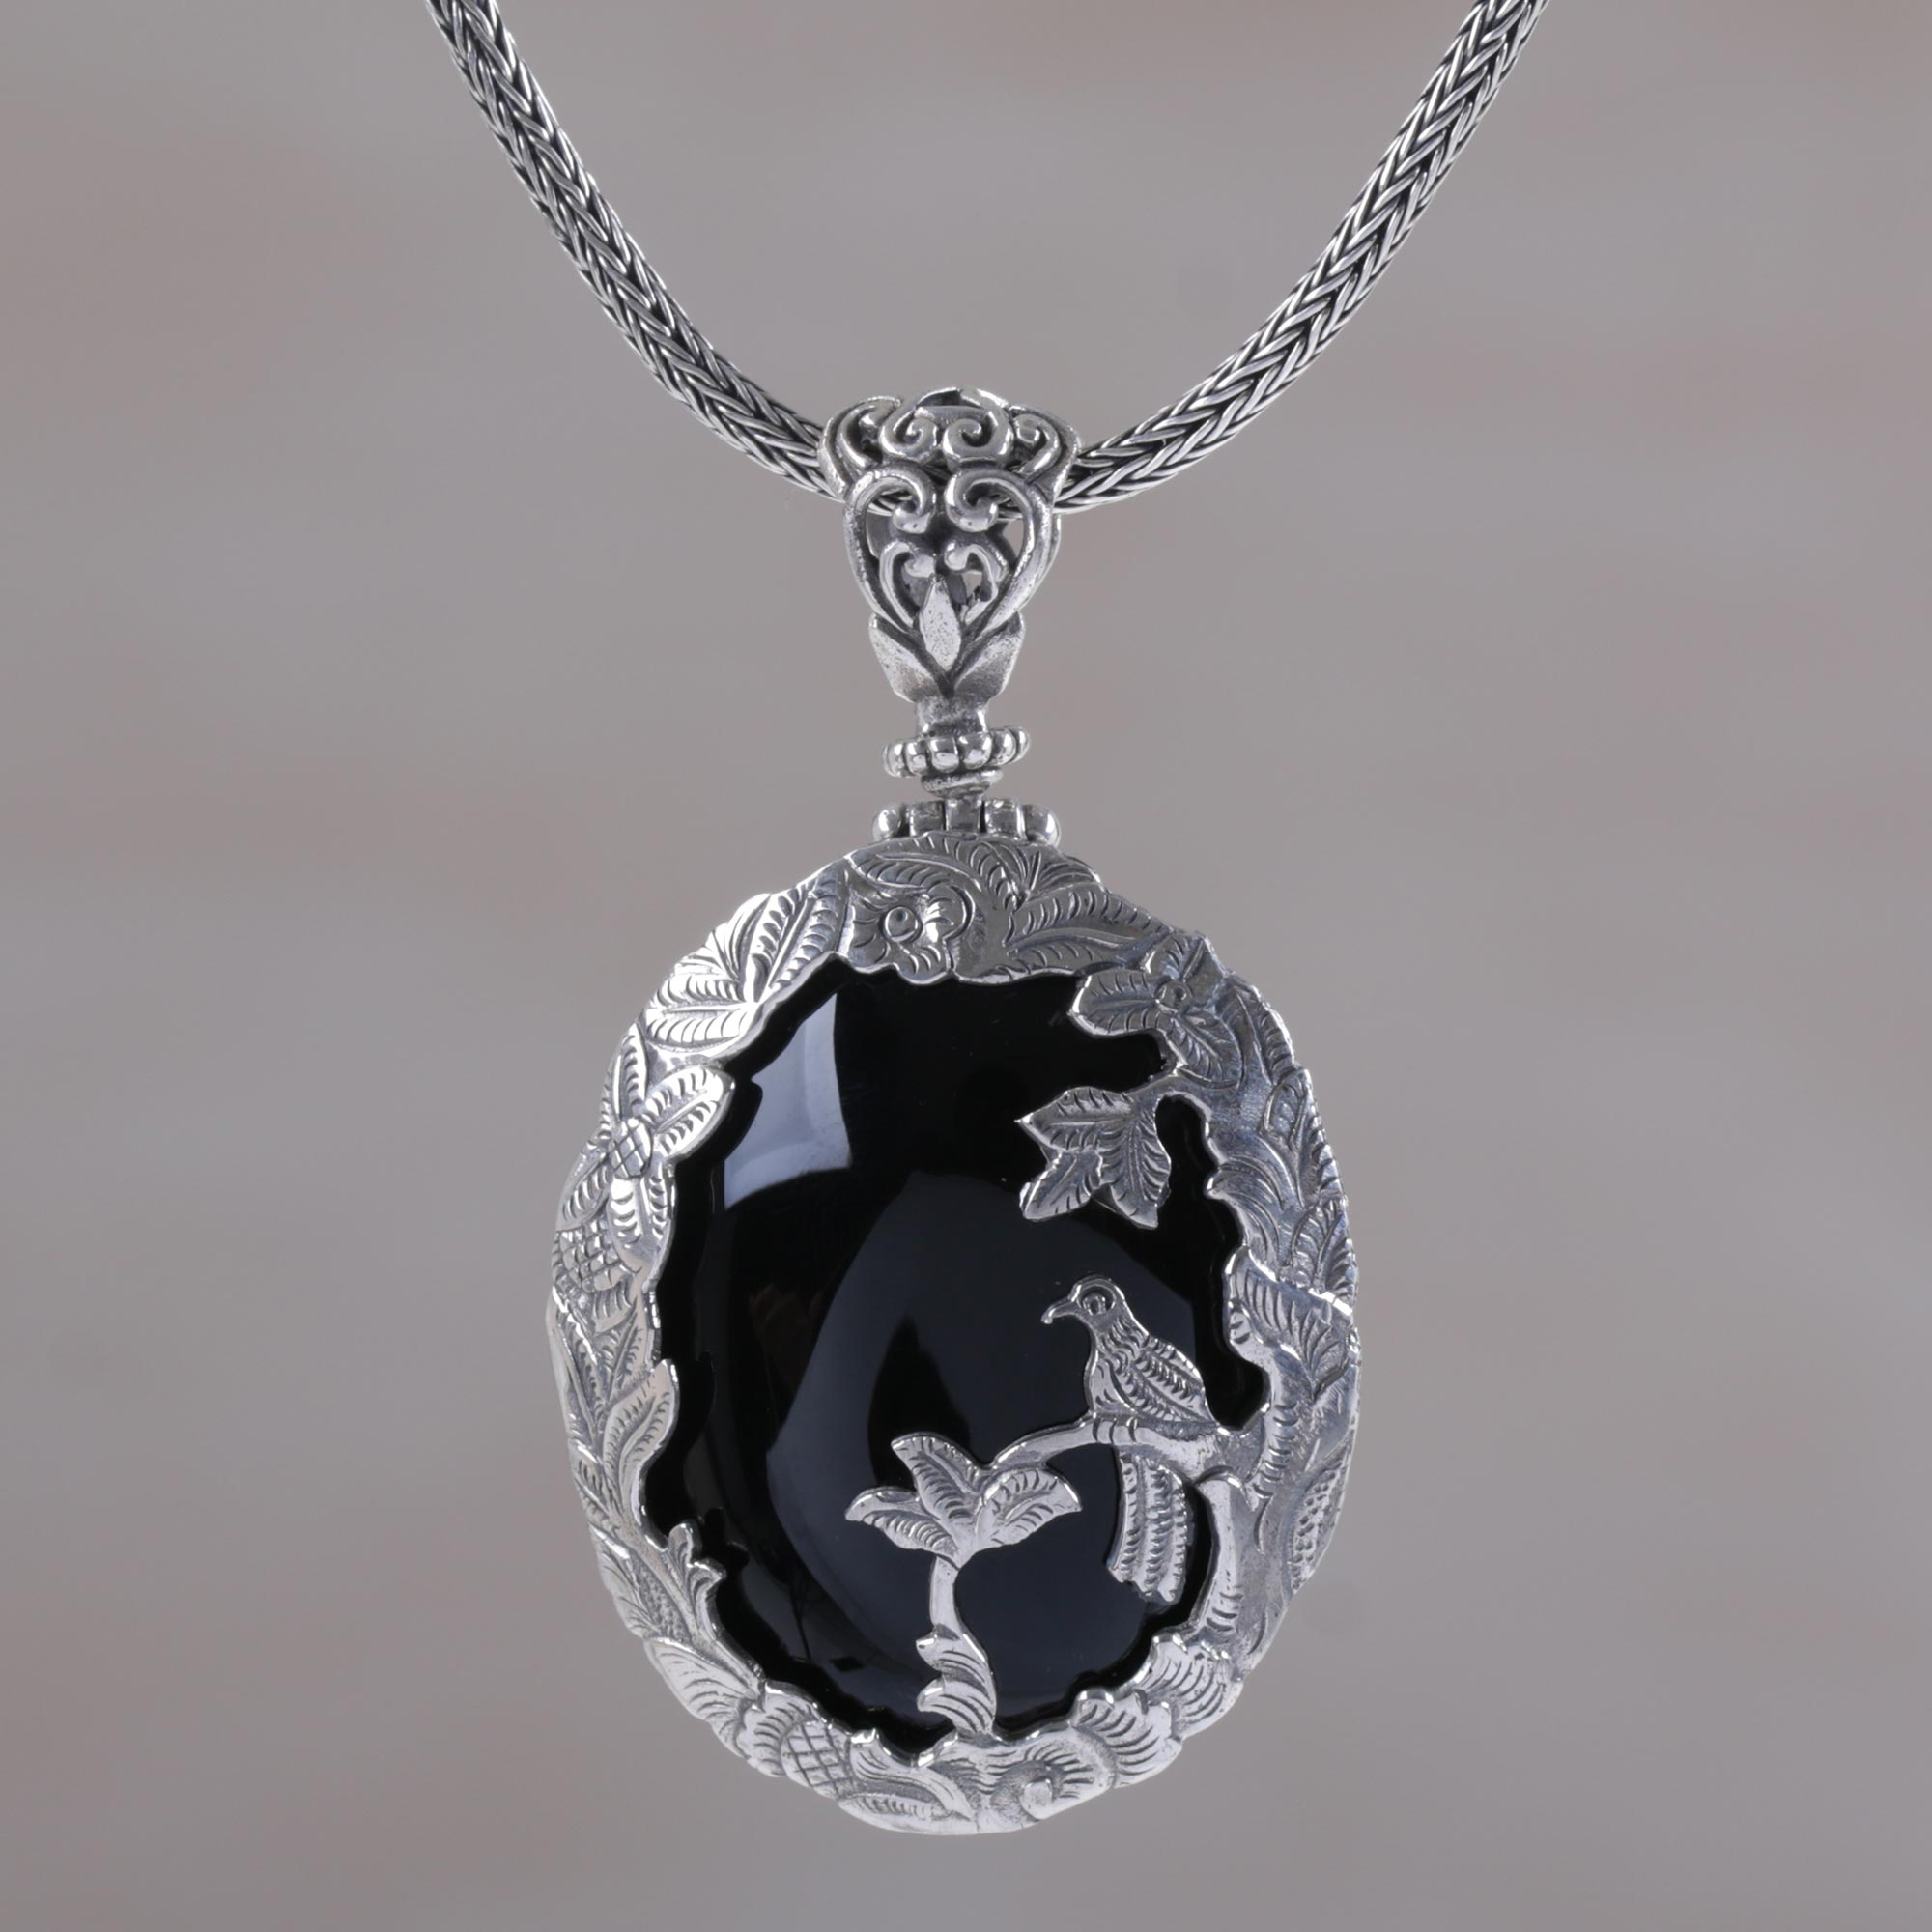 jewelry sun night necklace collections the asphalt sky wonders on global necklaces